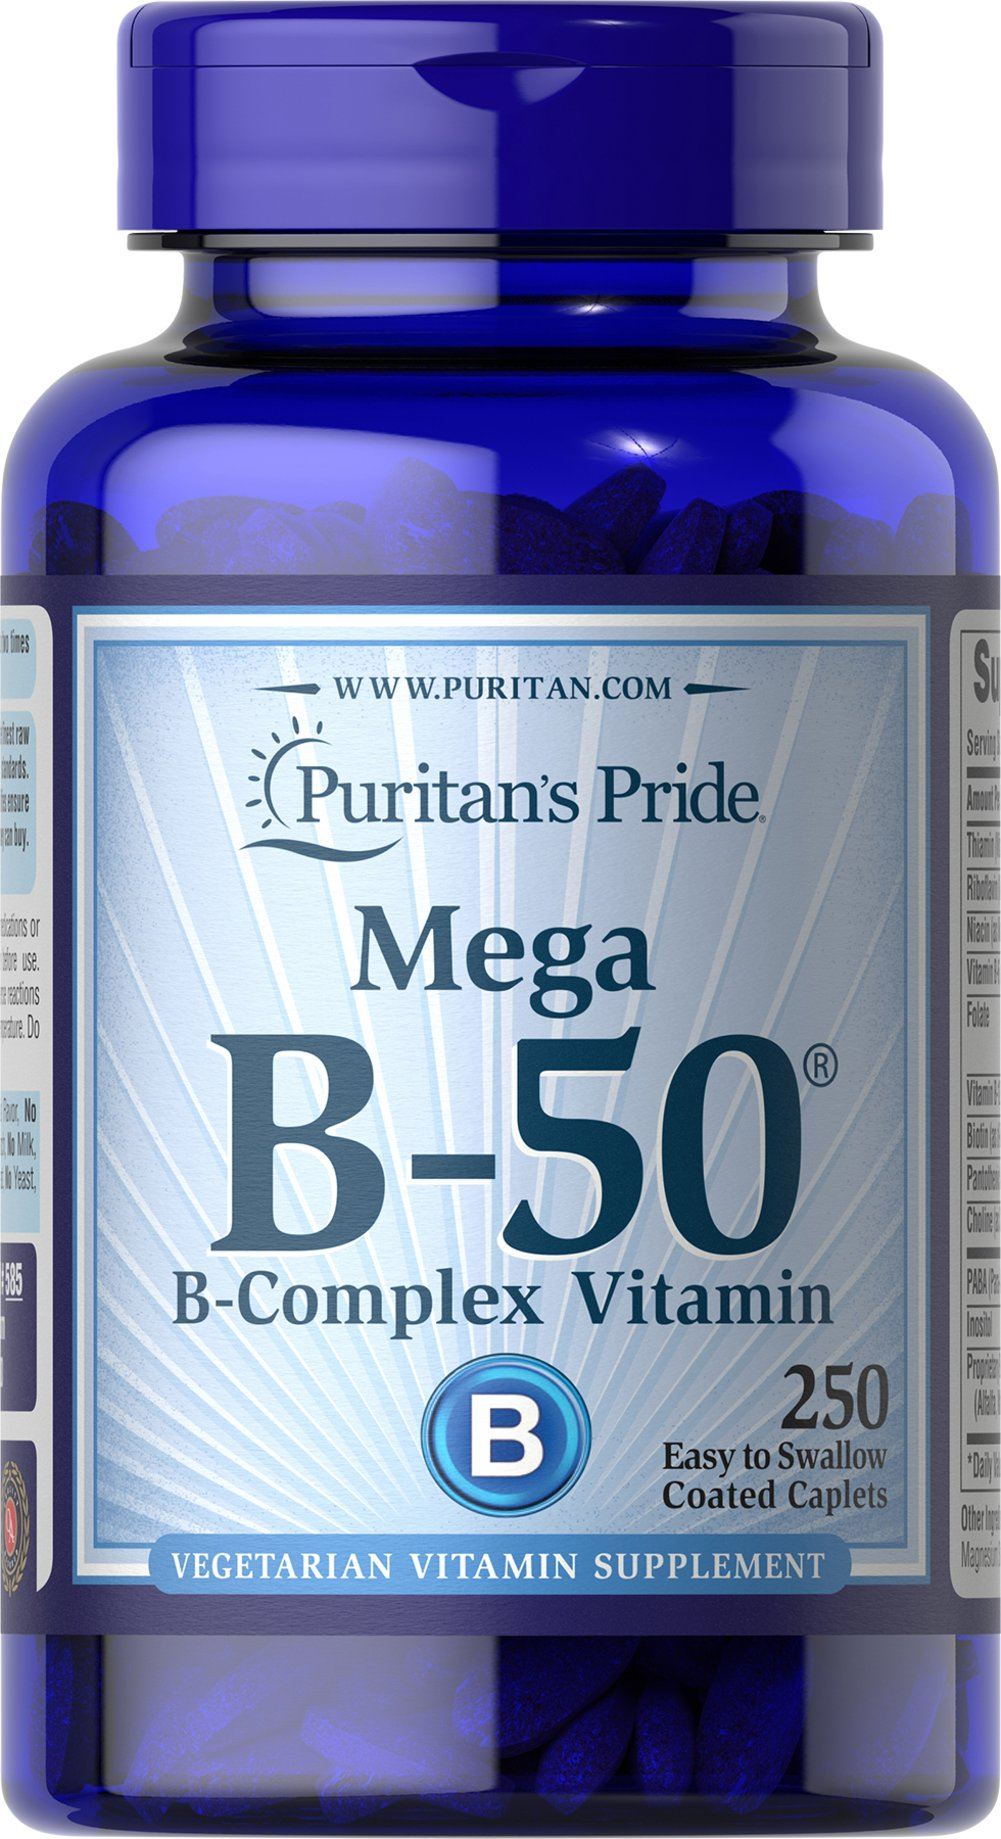 Vitamin B-50® Complex <p>The Vitamin B-50® Complex is made up of several vitamins that work well together to support nervous system health.** B Complex vitamins also promote energy metabolism.** Each nutrient in the Vitamin B Complex performs a unique role in maintaining proper metabolic functioning and is essential for well being.**</p> 250 Tablets 50 mg $33.49